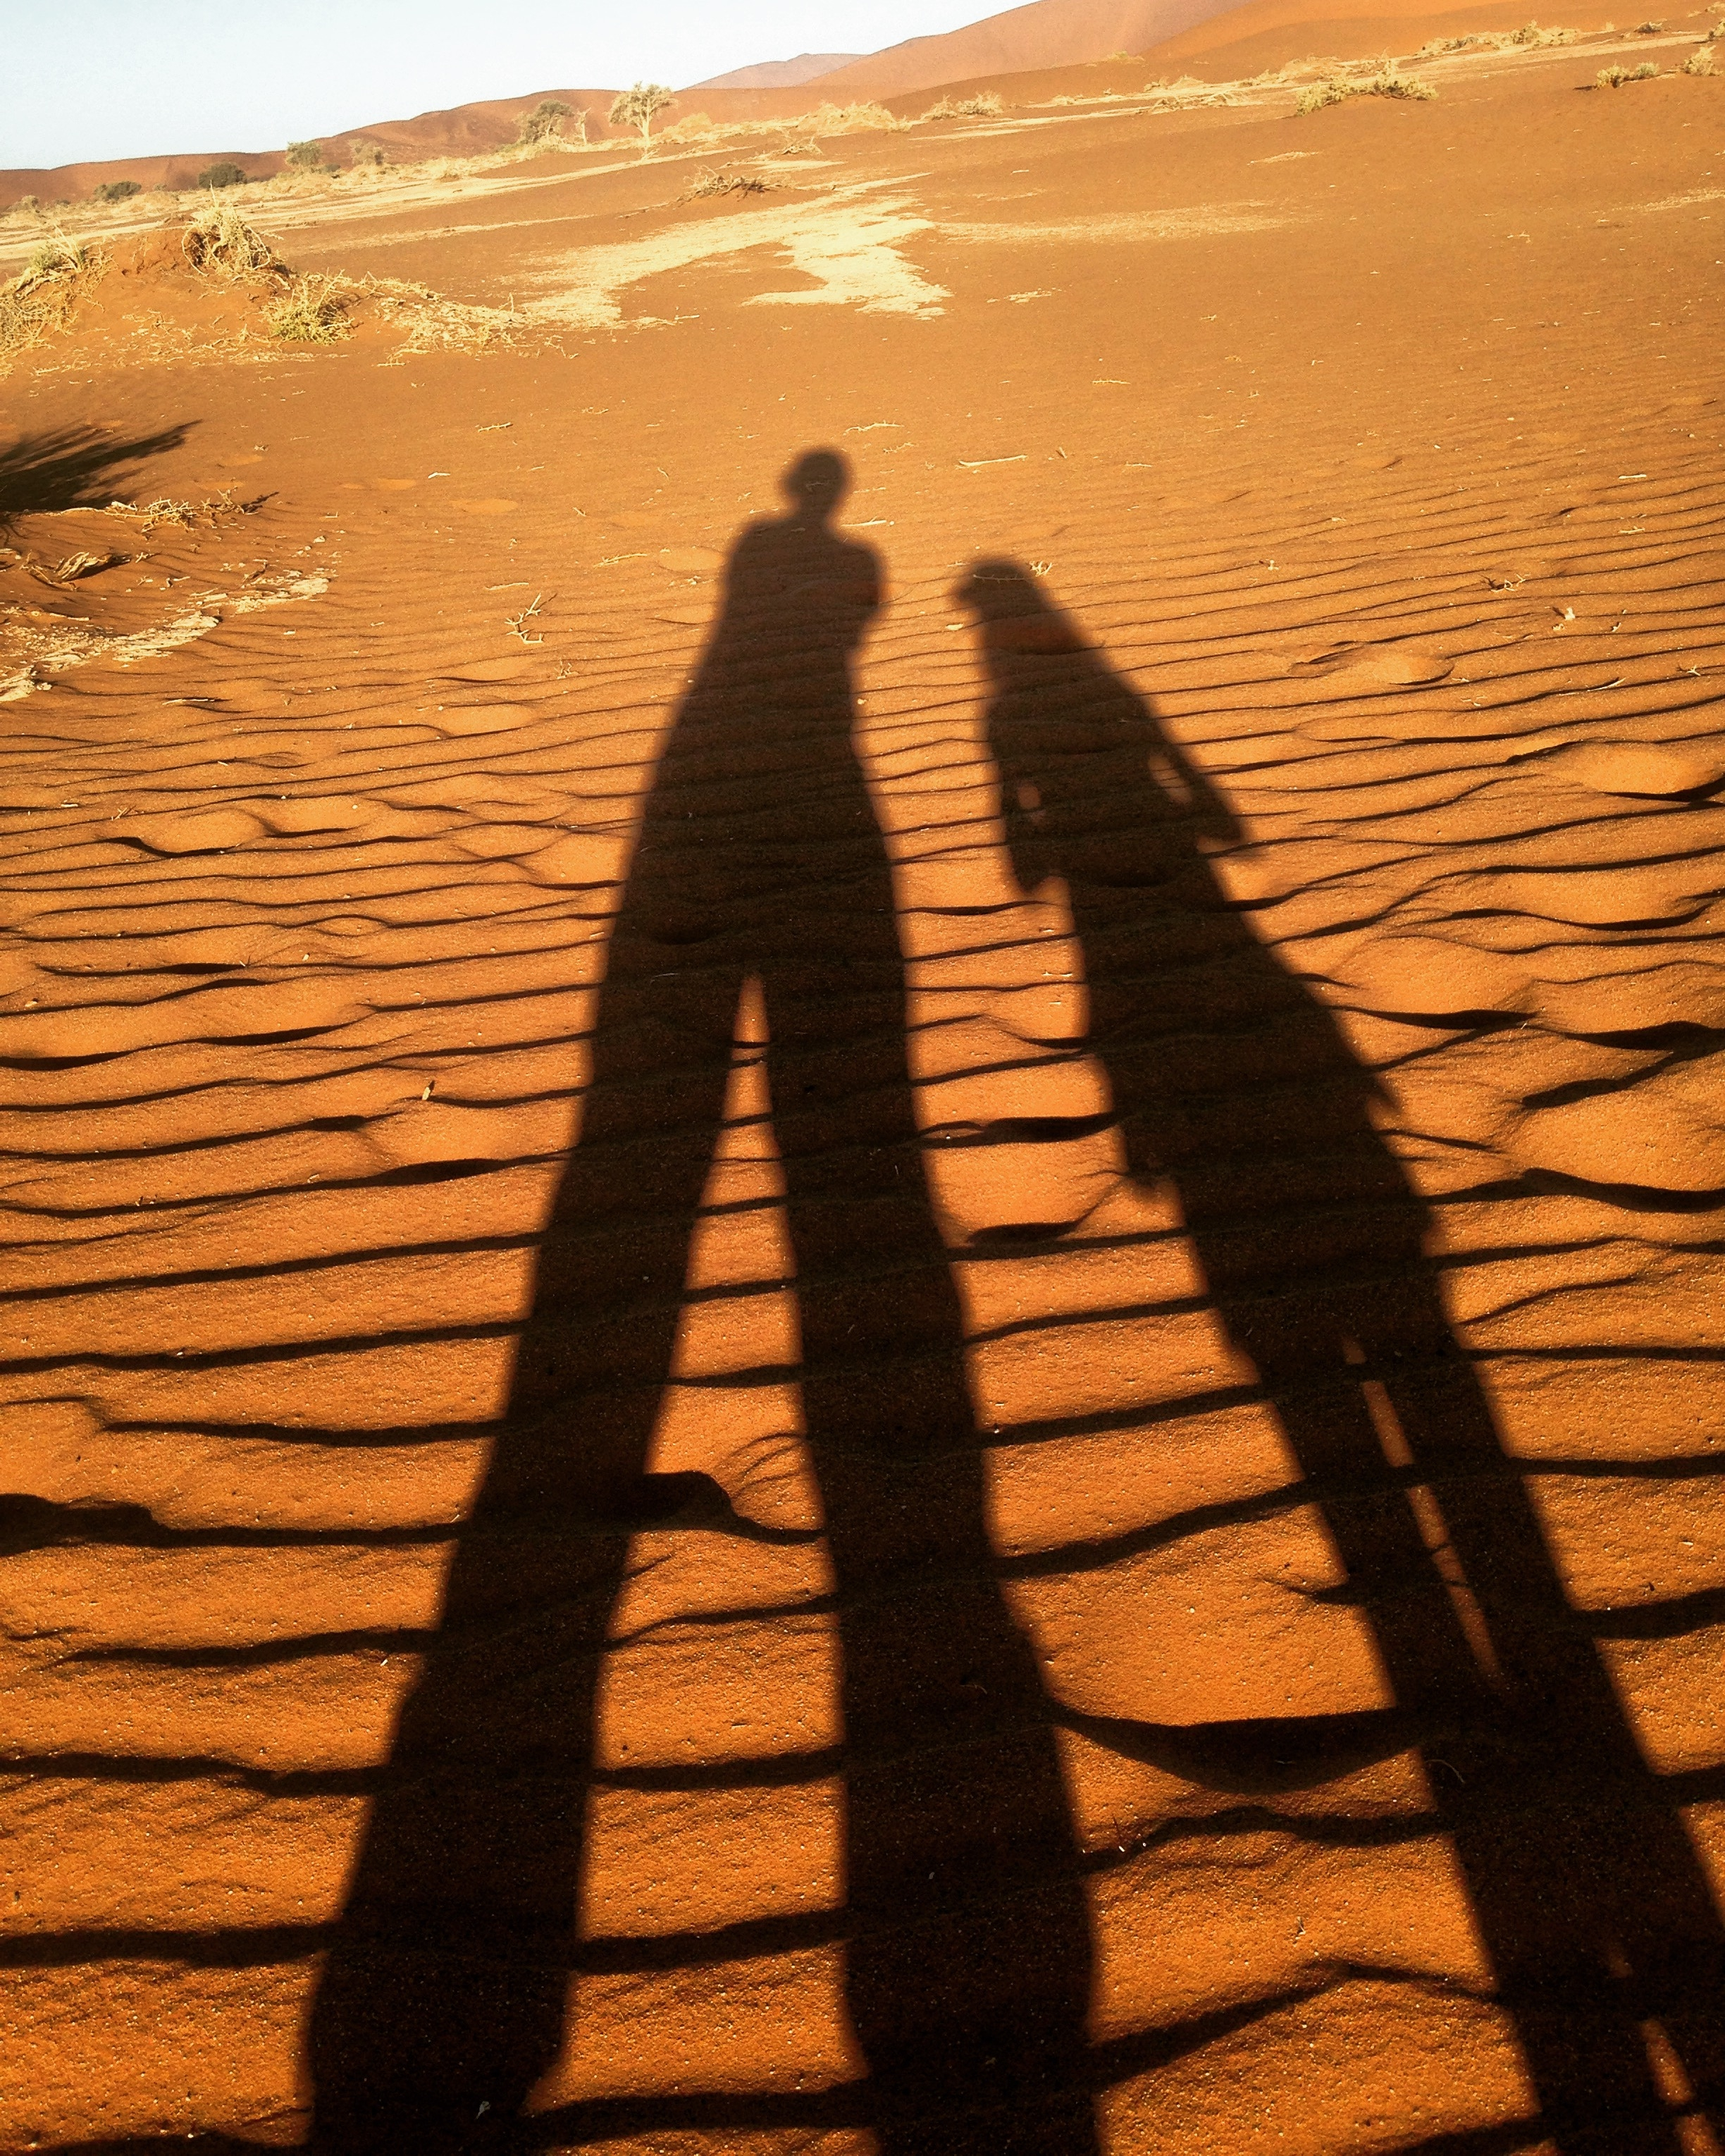 Shadow of Amy and Quinn reflected on the red dirt of the Soussusvlei desert in Namibia